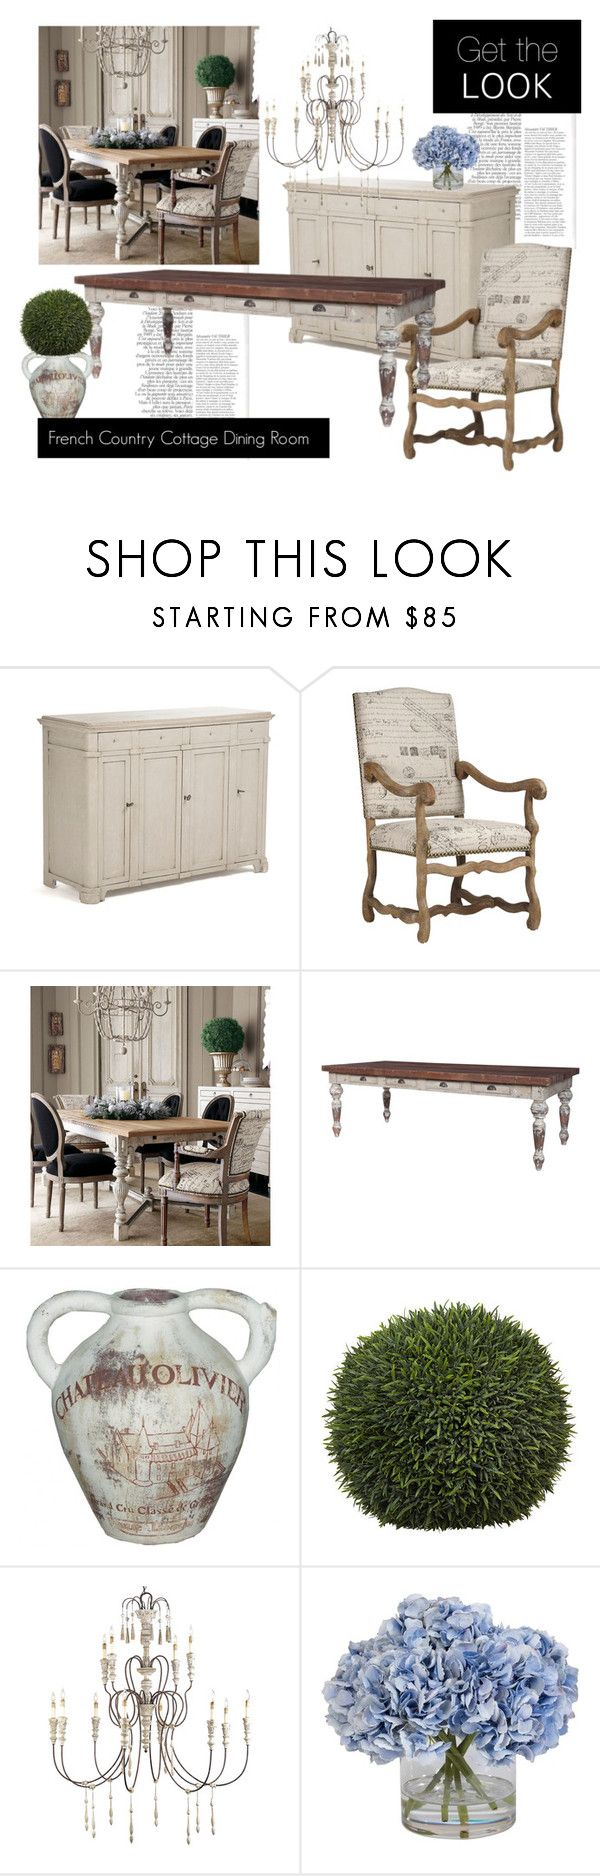 """""""French Country Cottage Dining Room"""" by belleescape ❤ liked on Polyvore featuring interior, interiors, interior design, home, home decor, interior decorating, Pomax, Ethan Allen, dining room and country"""